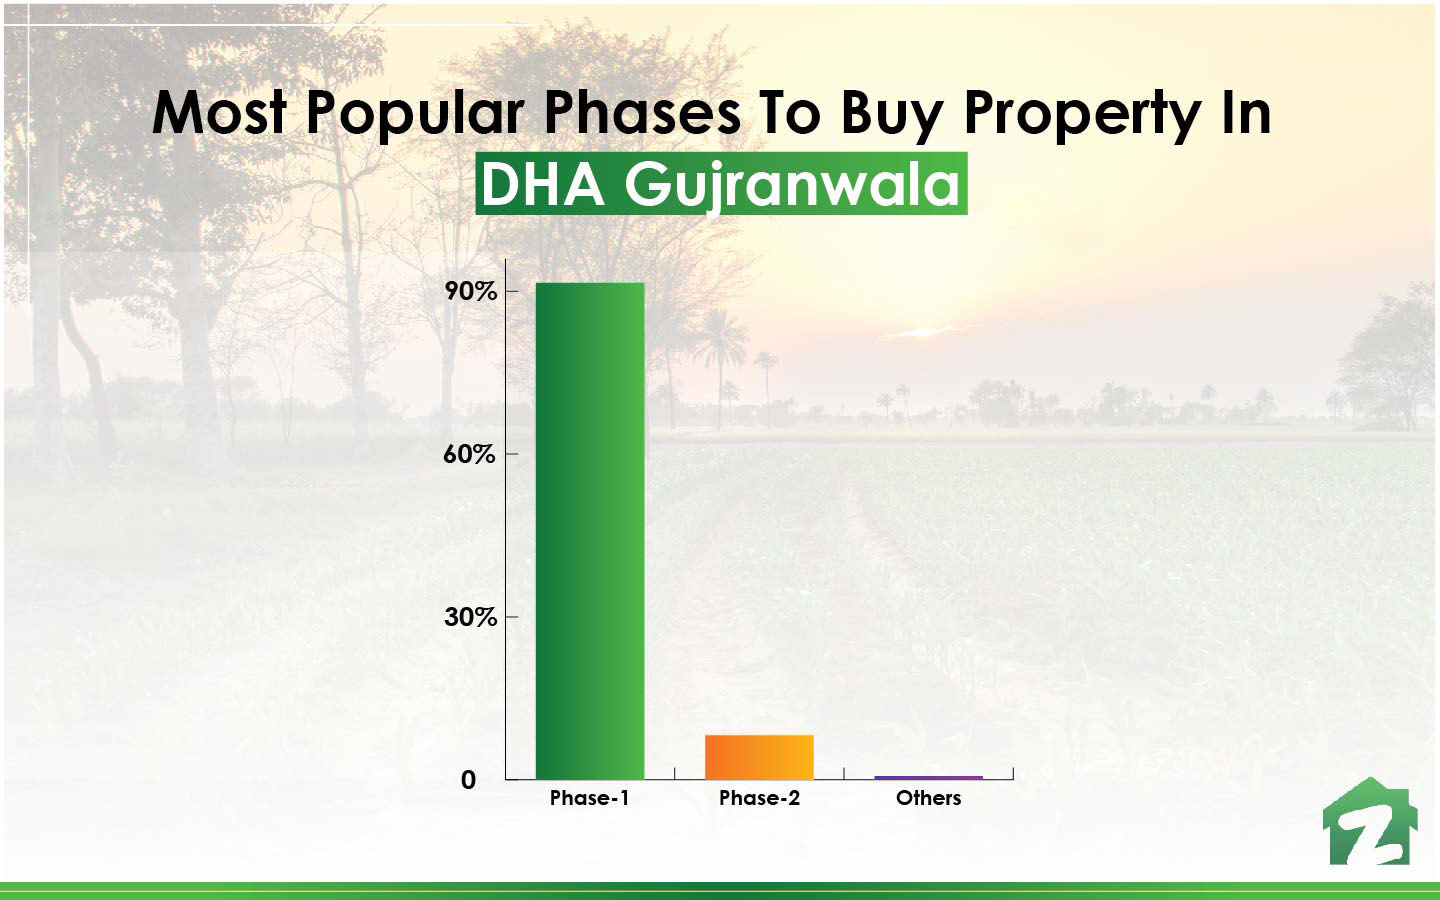 popular phases in DHA Gujranwala to buy property